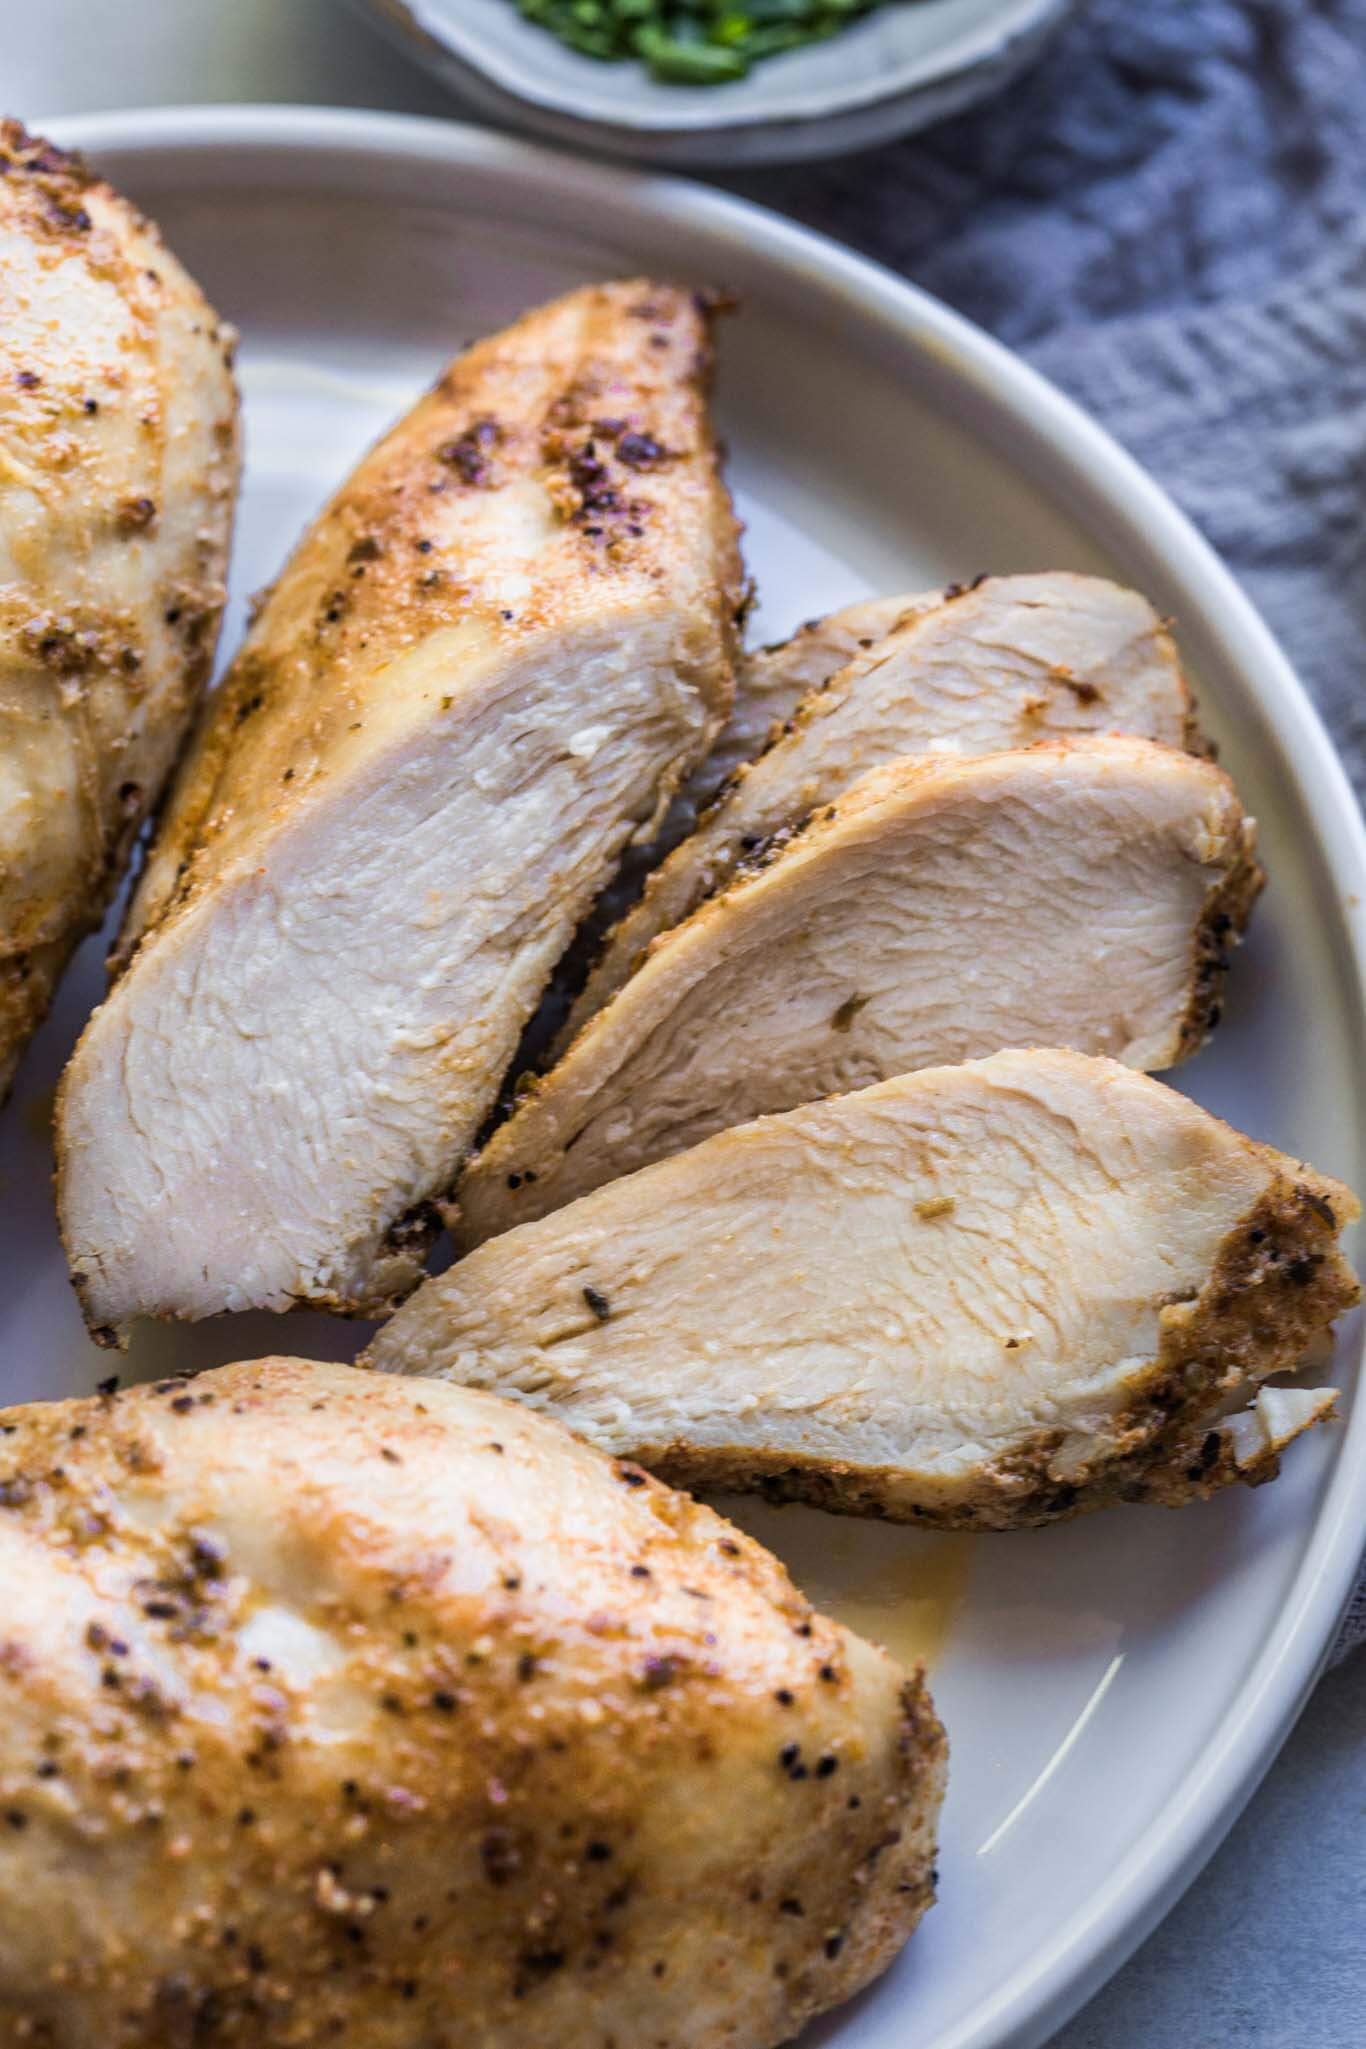 Carved up instant pot chicken breasts.